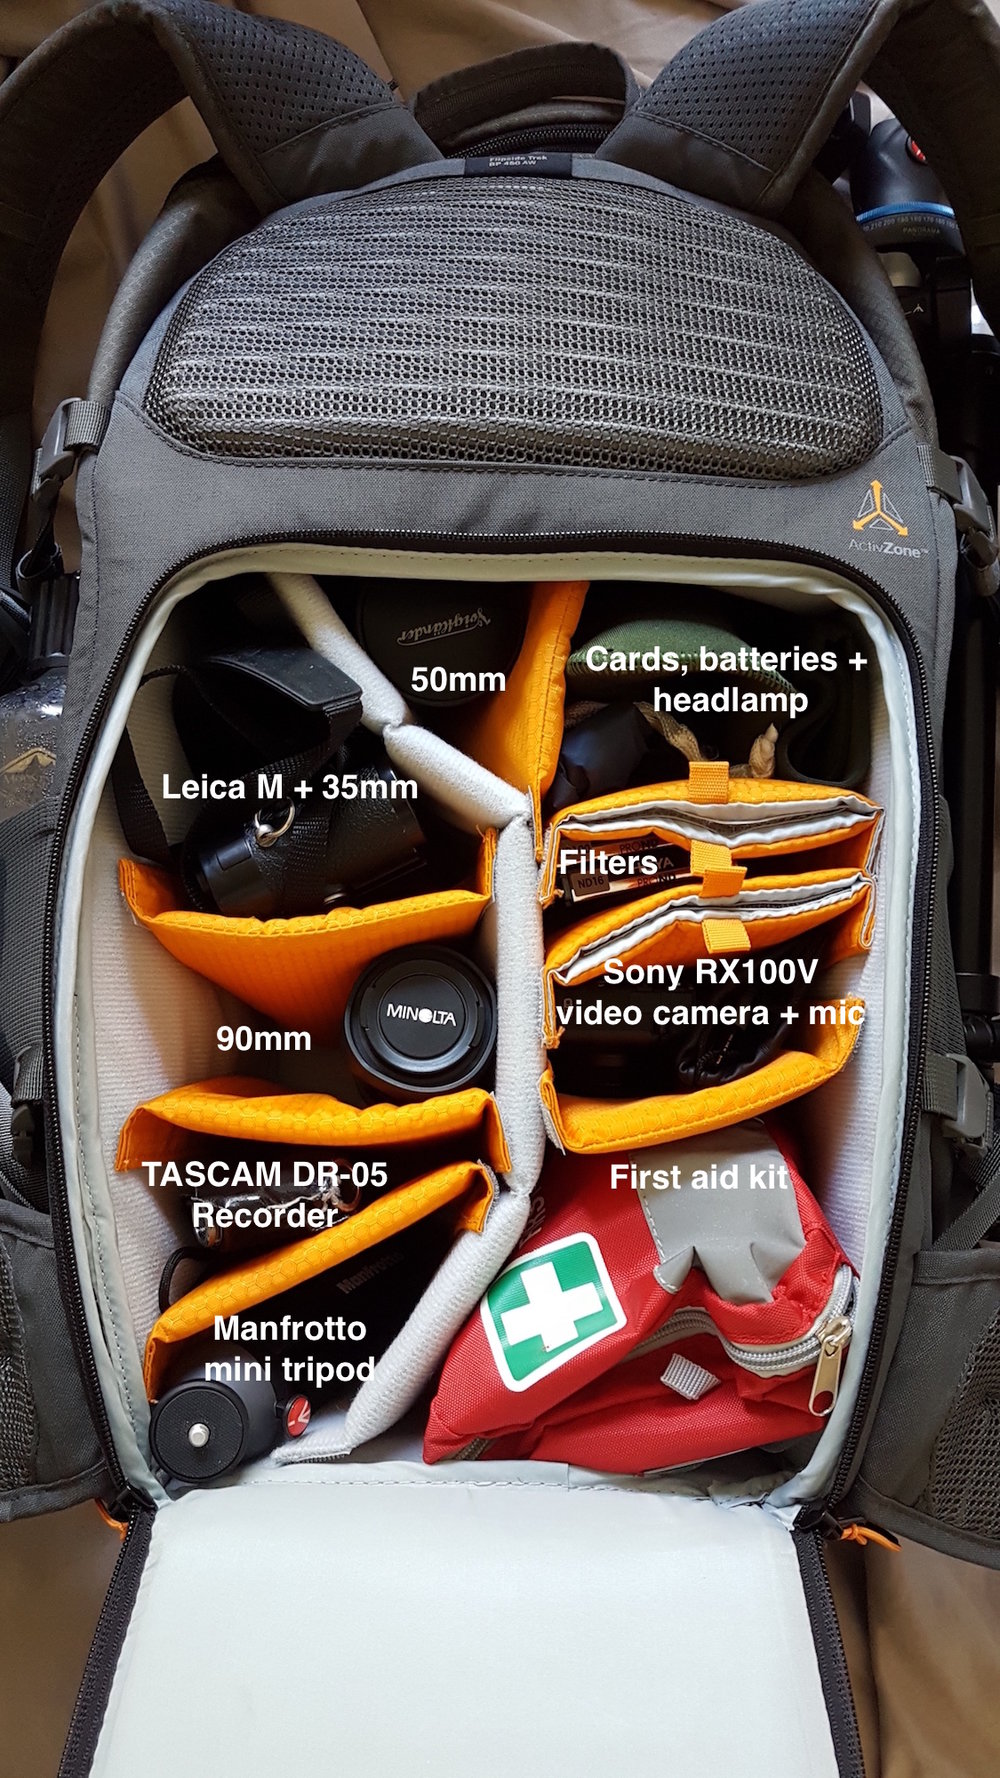 LowePro Flipside Trek 450 AW, Inside Layout, Hiking, Camera Backpack, Gear, Manfrotto Befree Tripod, Water Bottle, Trekking, Travel, MacBook Retina.jpg